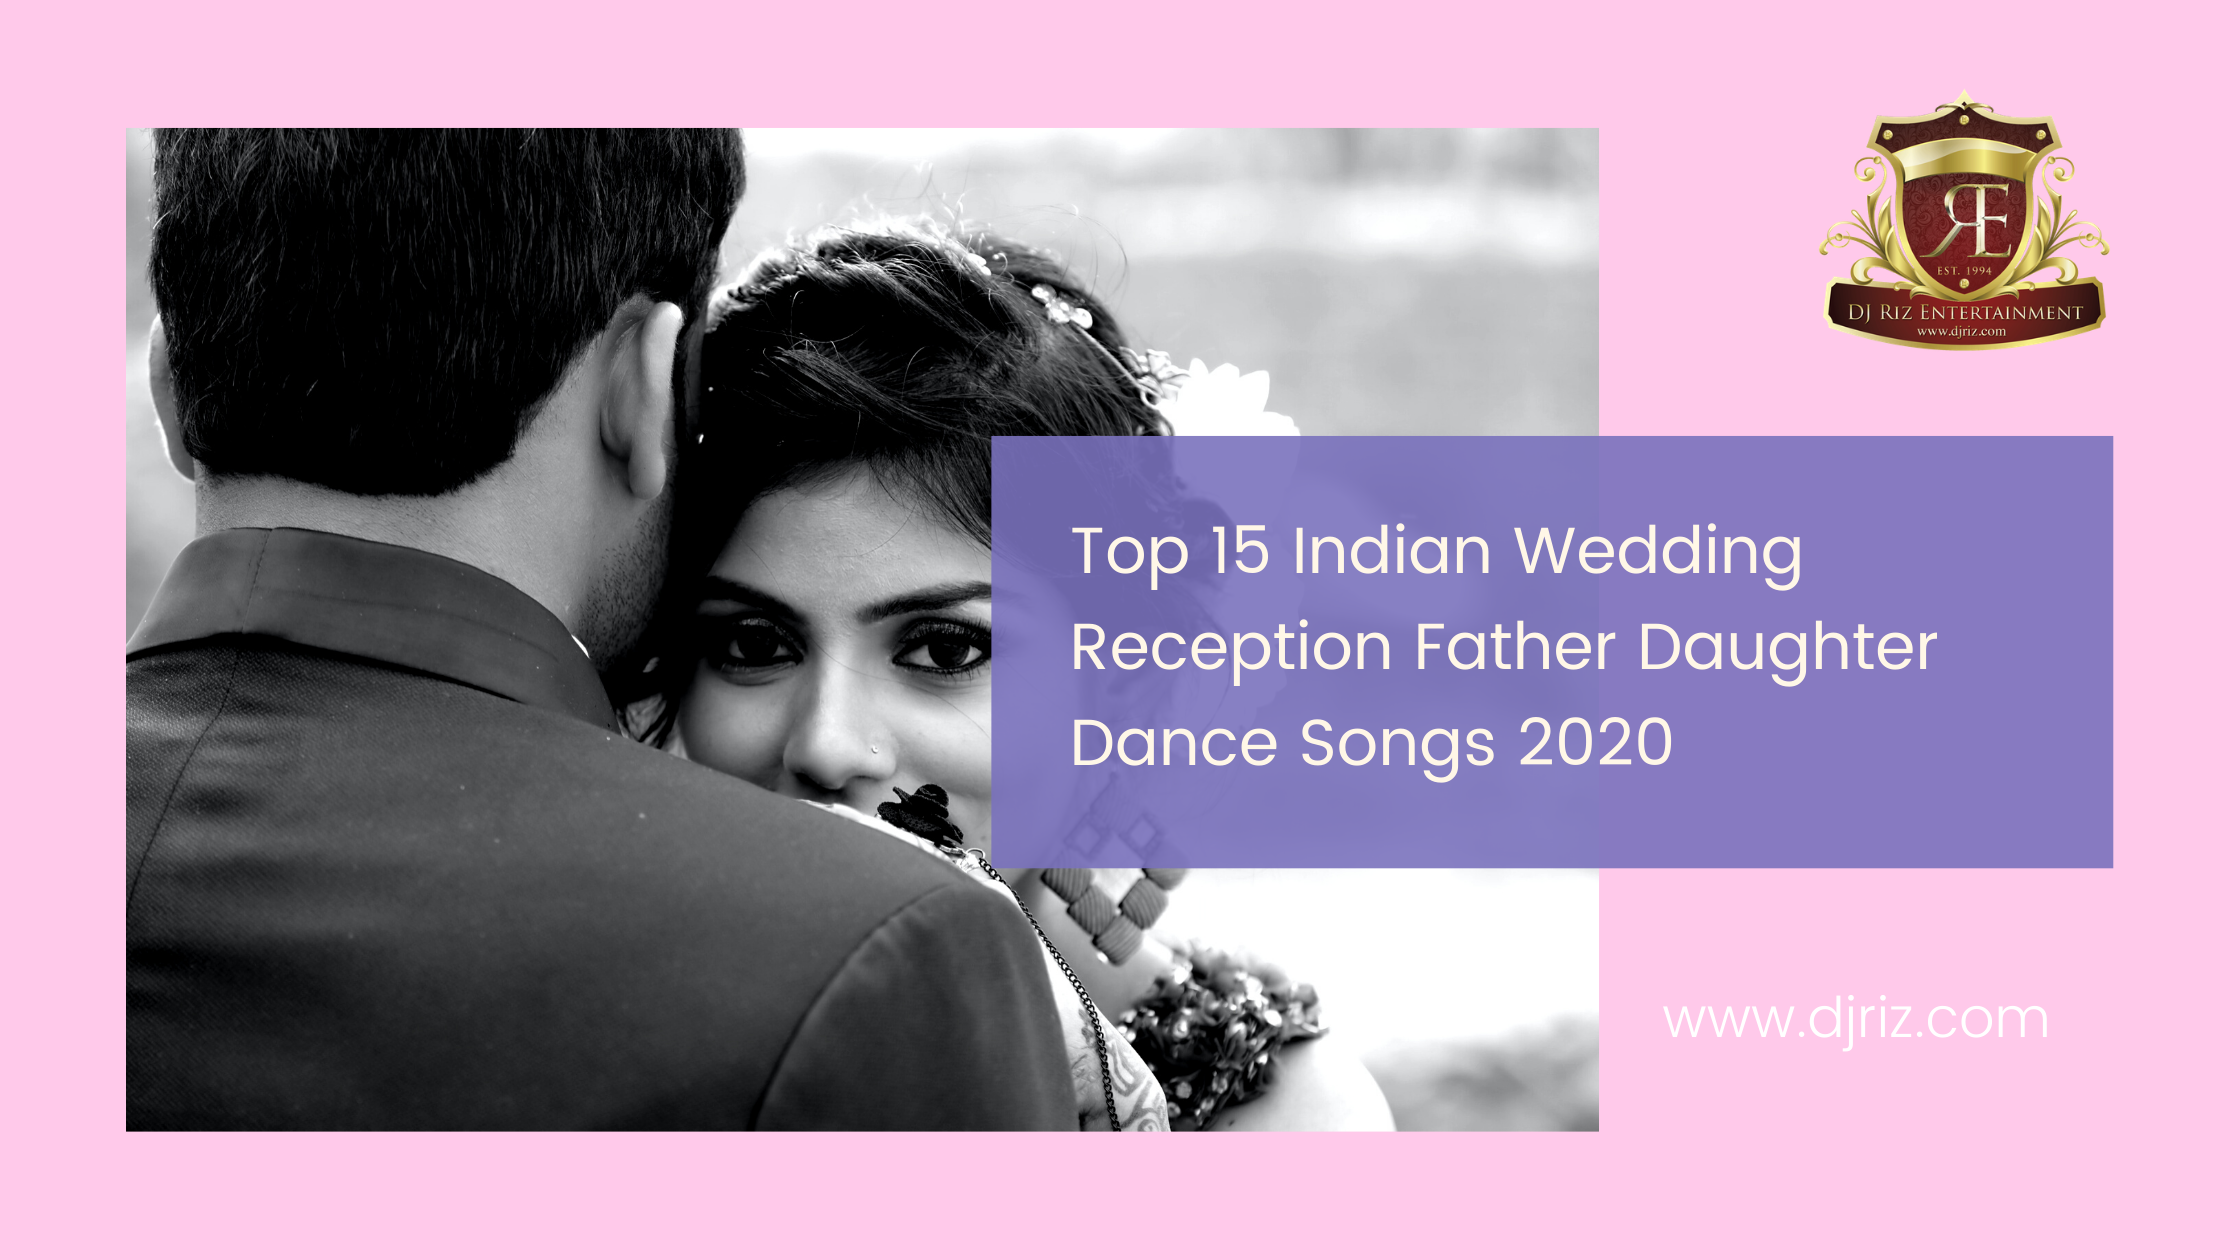 Indian Wedding Reception Father Daughter Dance Songs 2020